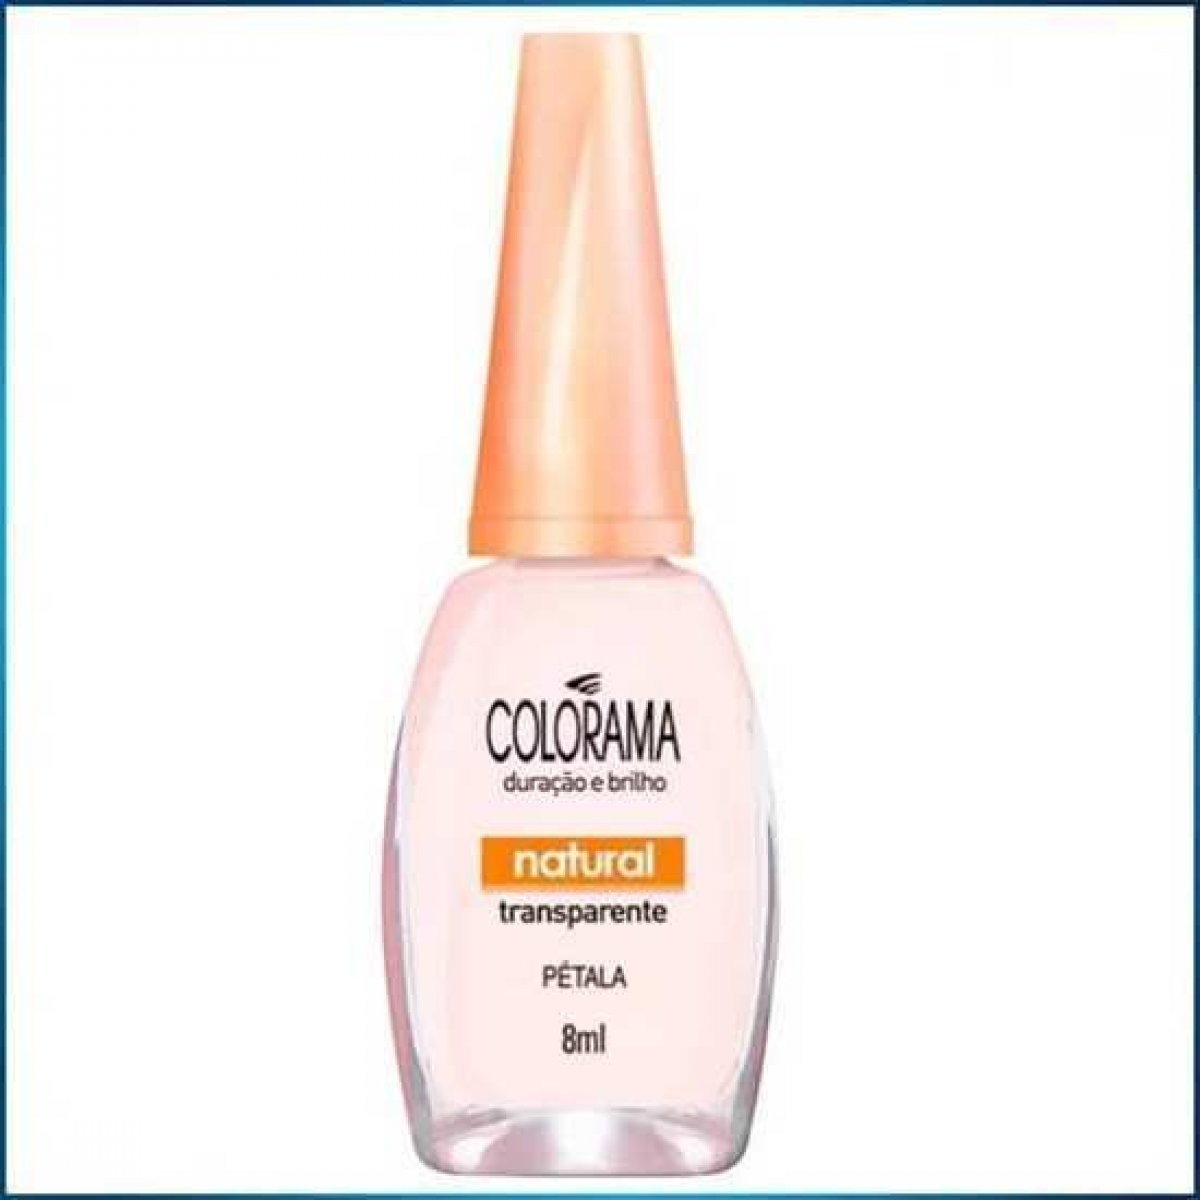 Esmalte Colorama Natural Transparente Pétala